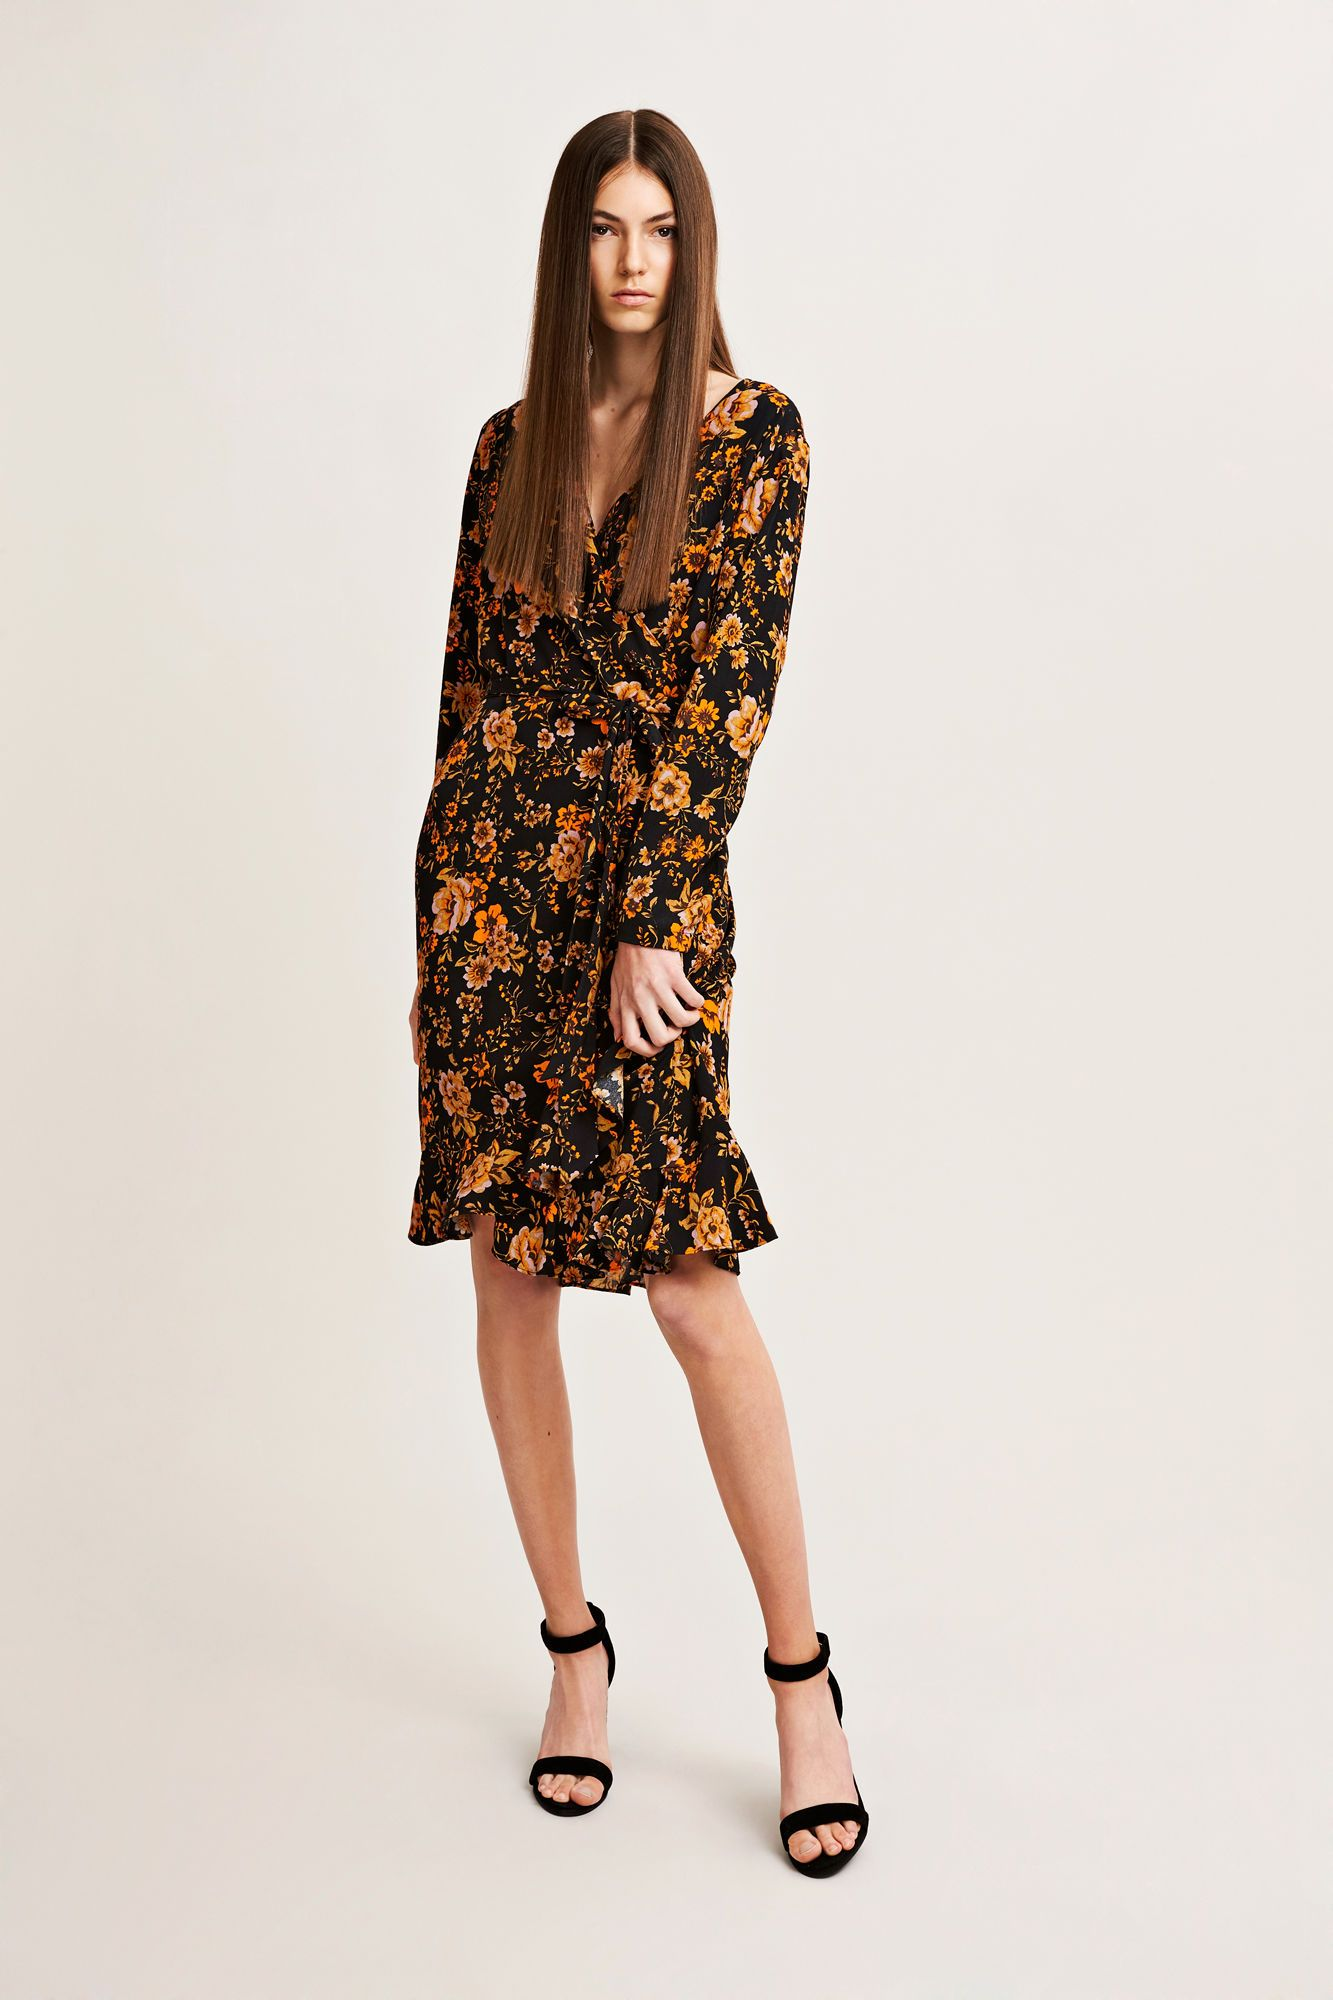 87cbbd12604 Samsøe Samsøe Limon ls dress aop 6515, BLACK BLOOM | Clothing in ...